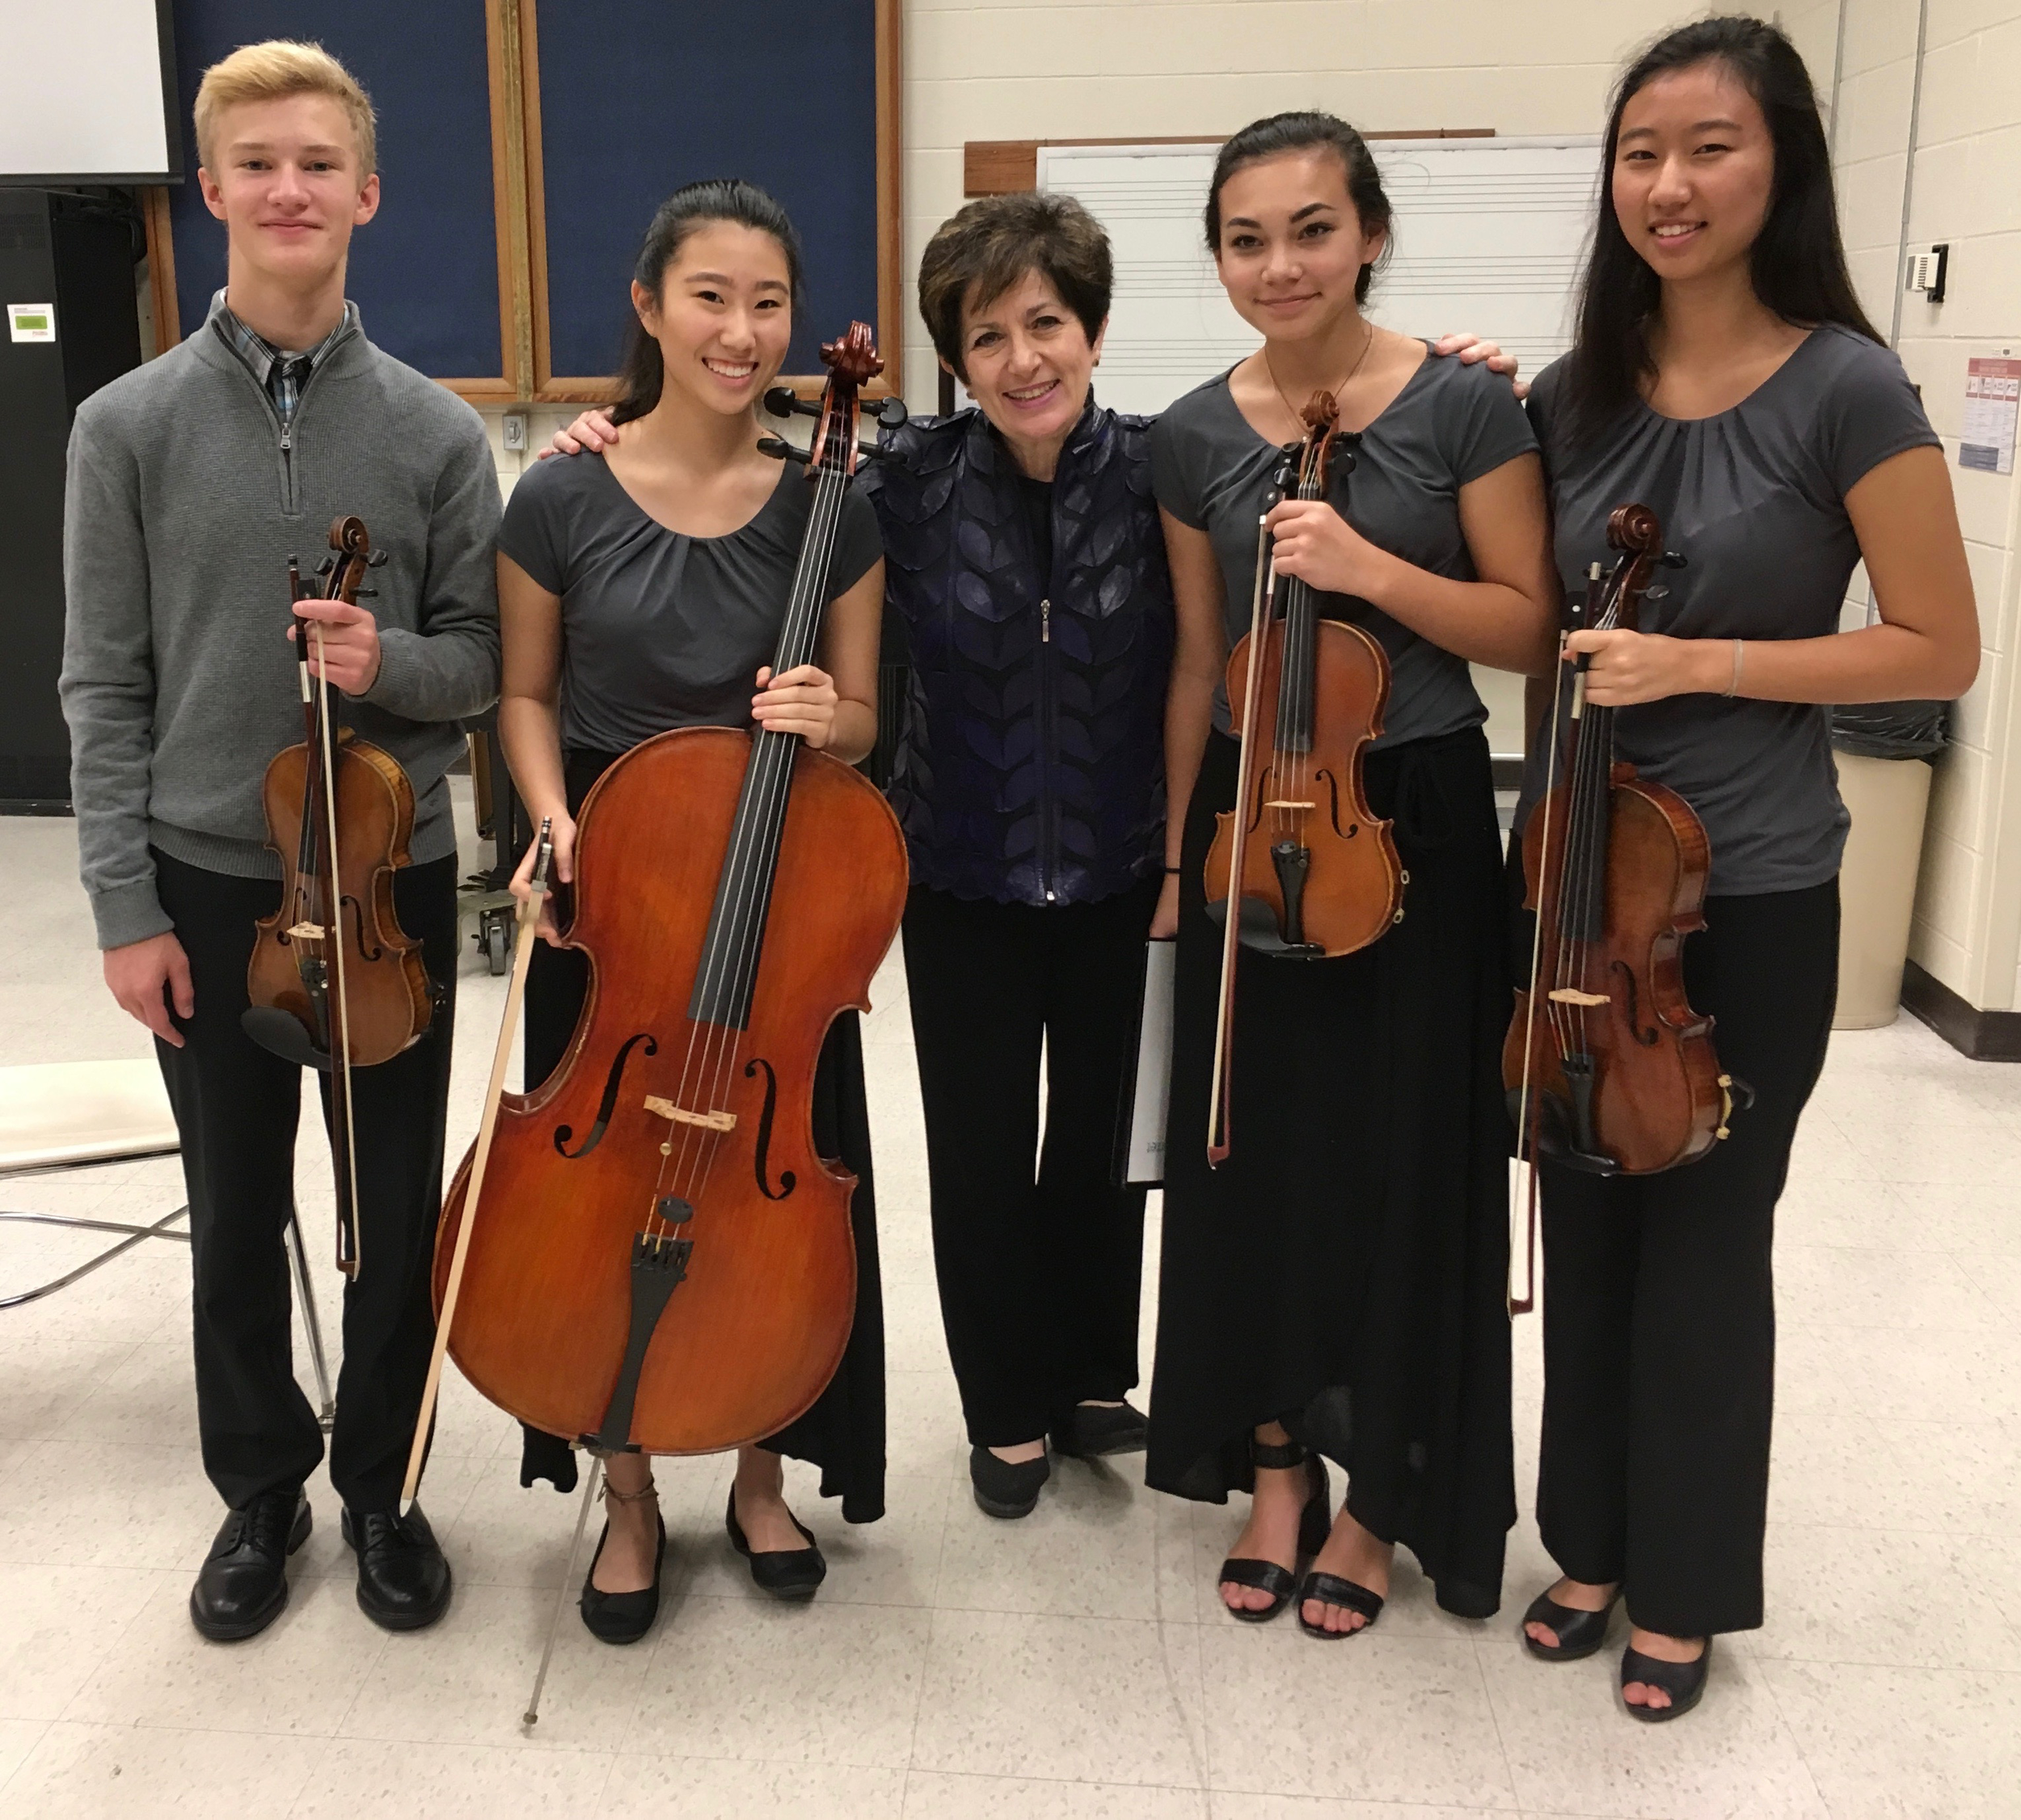 Ida Kavafian, world-renowned violinist and professor at the Juilliard School and the Curtis Institute, with the Klier String Quartet made up of student from Ames and Gilbert High School.